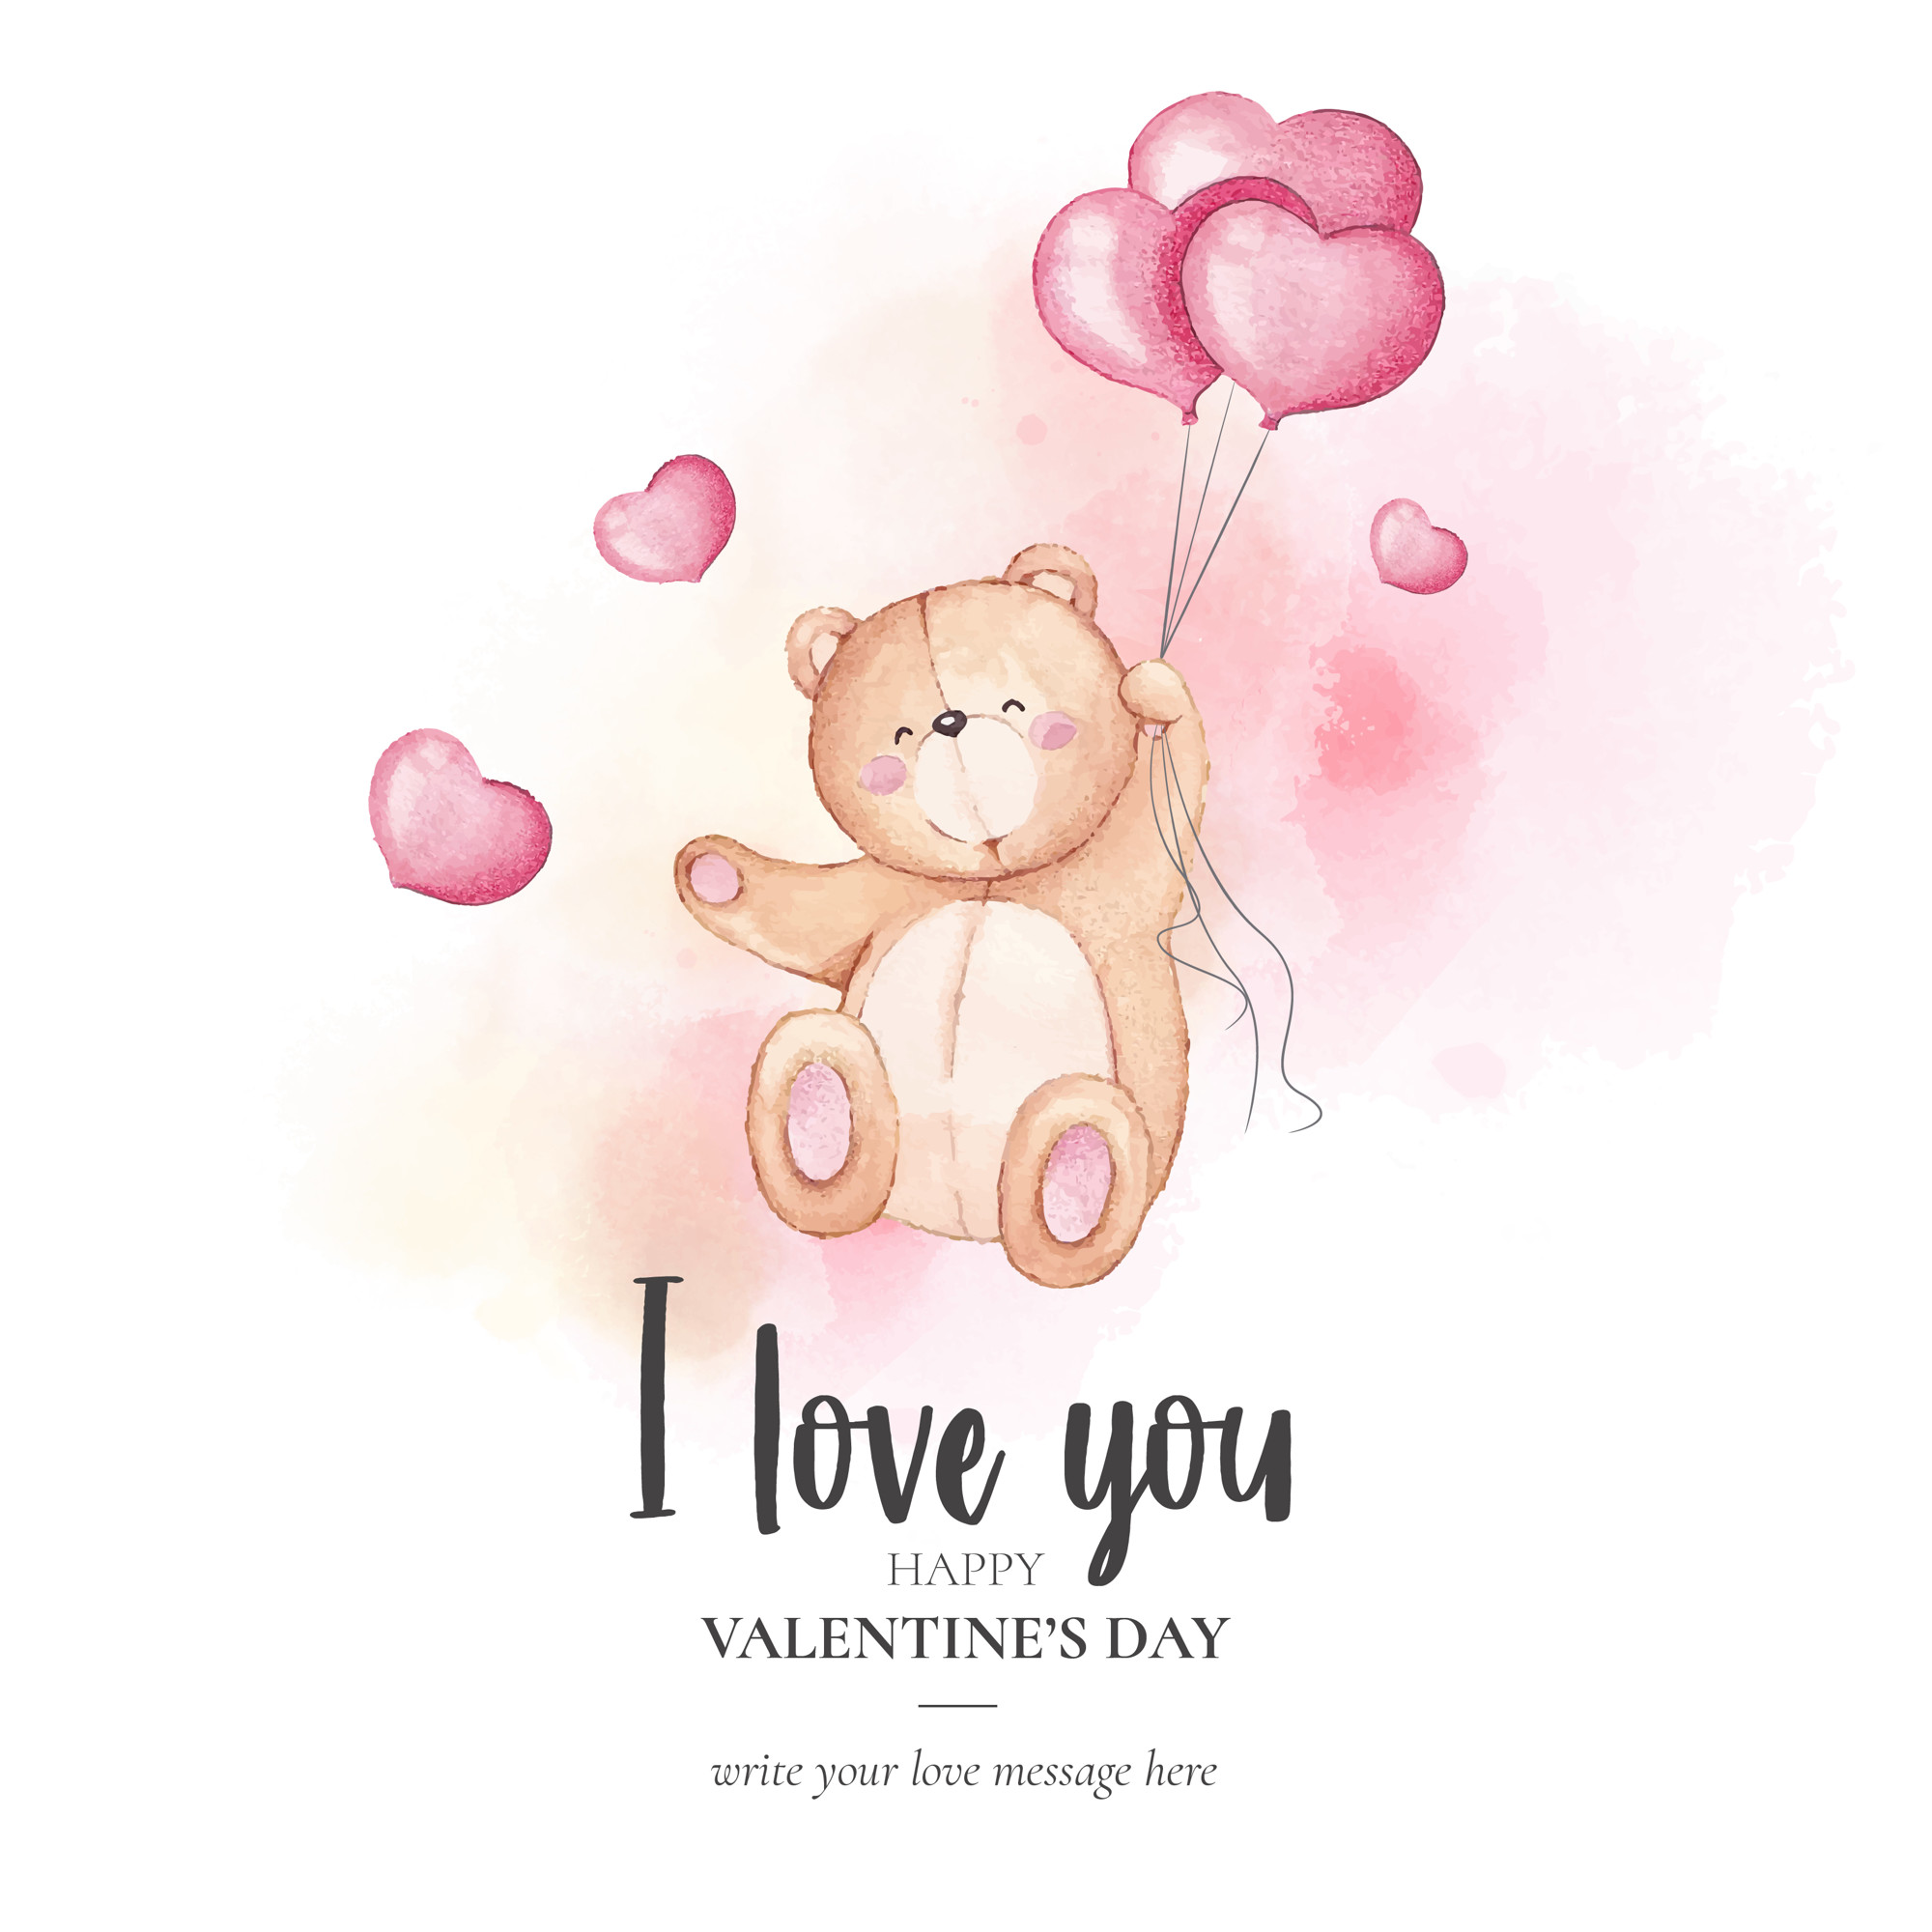 Cute Valentine's Day Background with Watercolor Teddy Bear